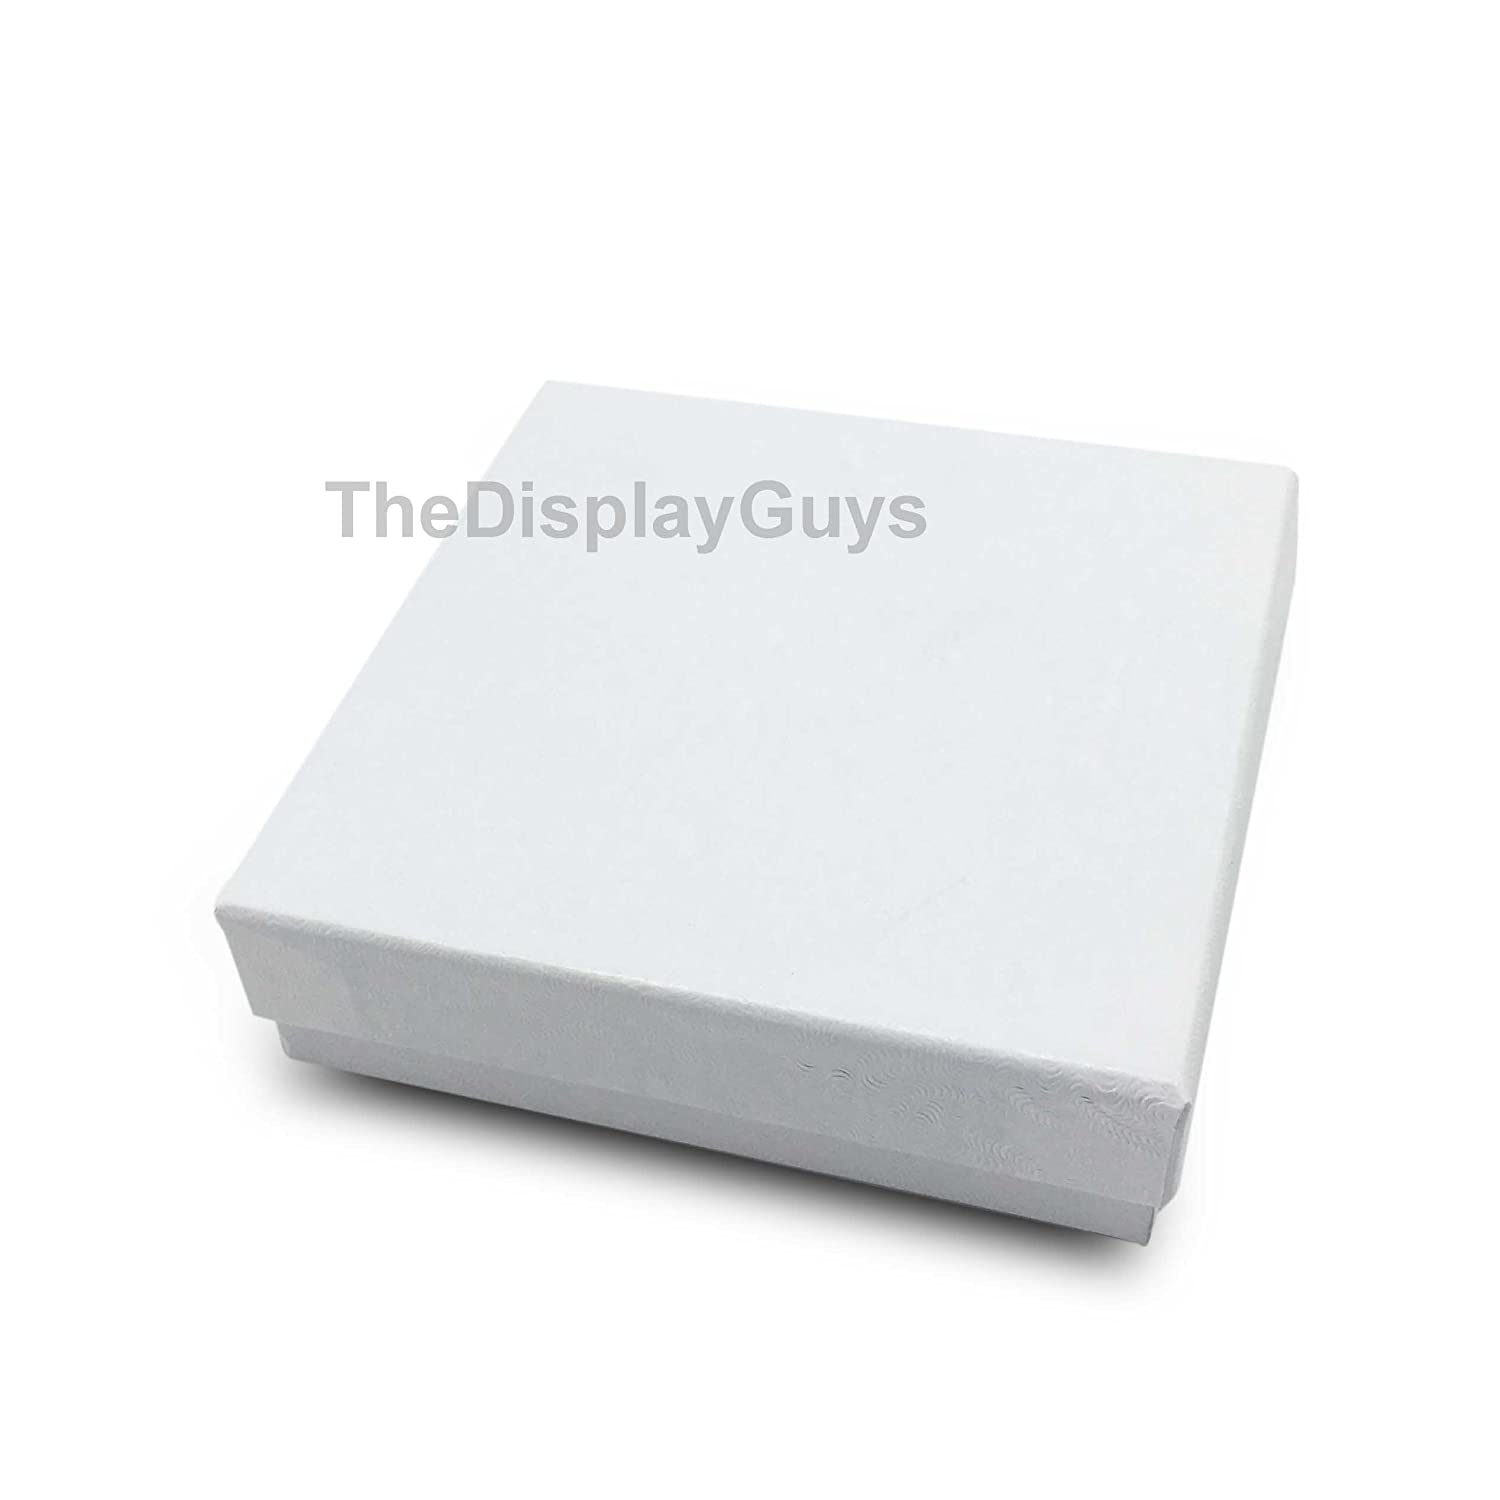 The Display Guys Pack of 25 Cotton Filled Cardboard Paper White Jewelry Box Gift Case 5 pcs Each of #11//#21//#32//#33//#82